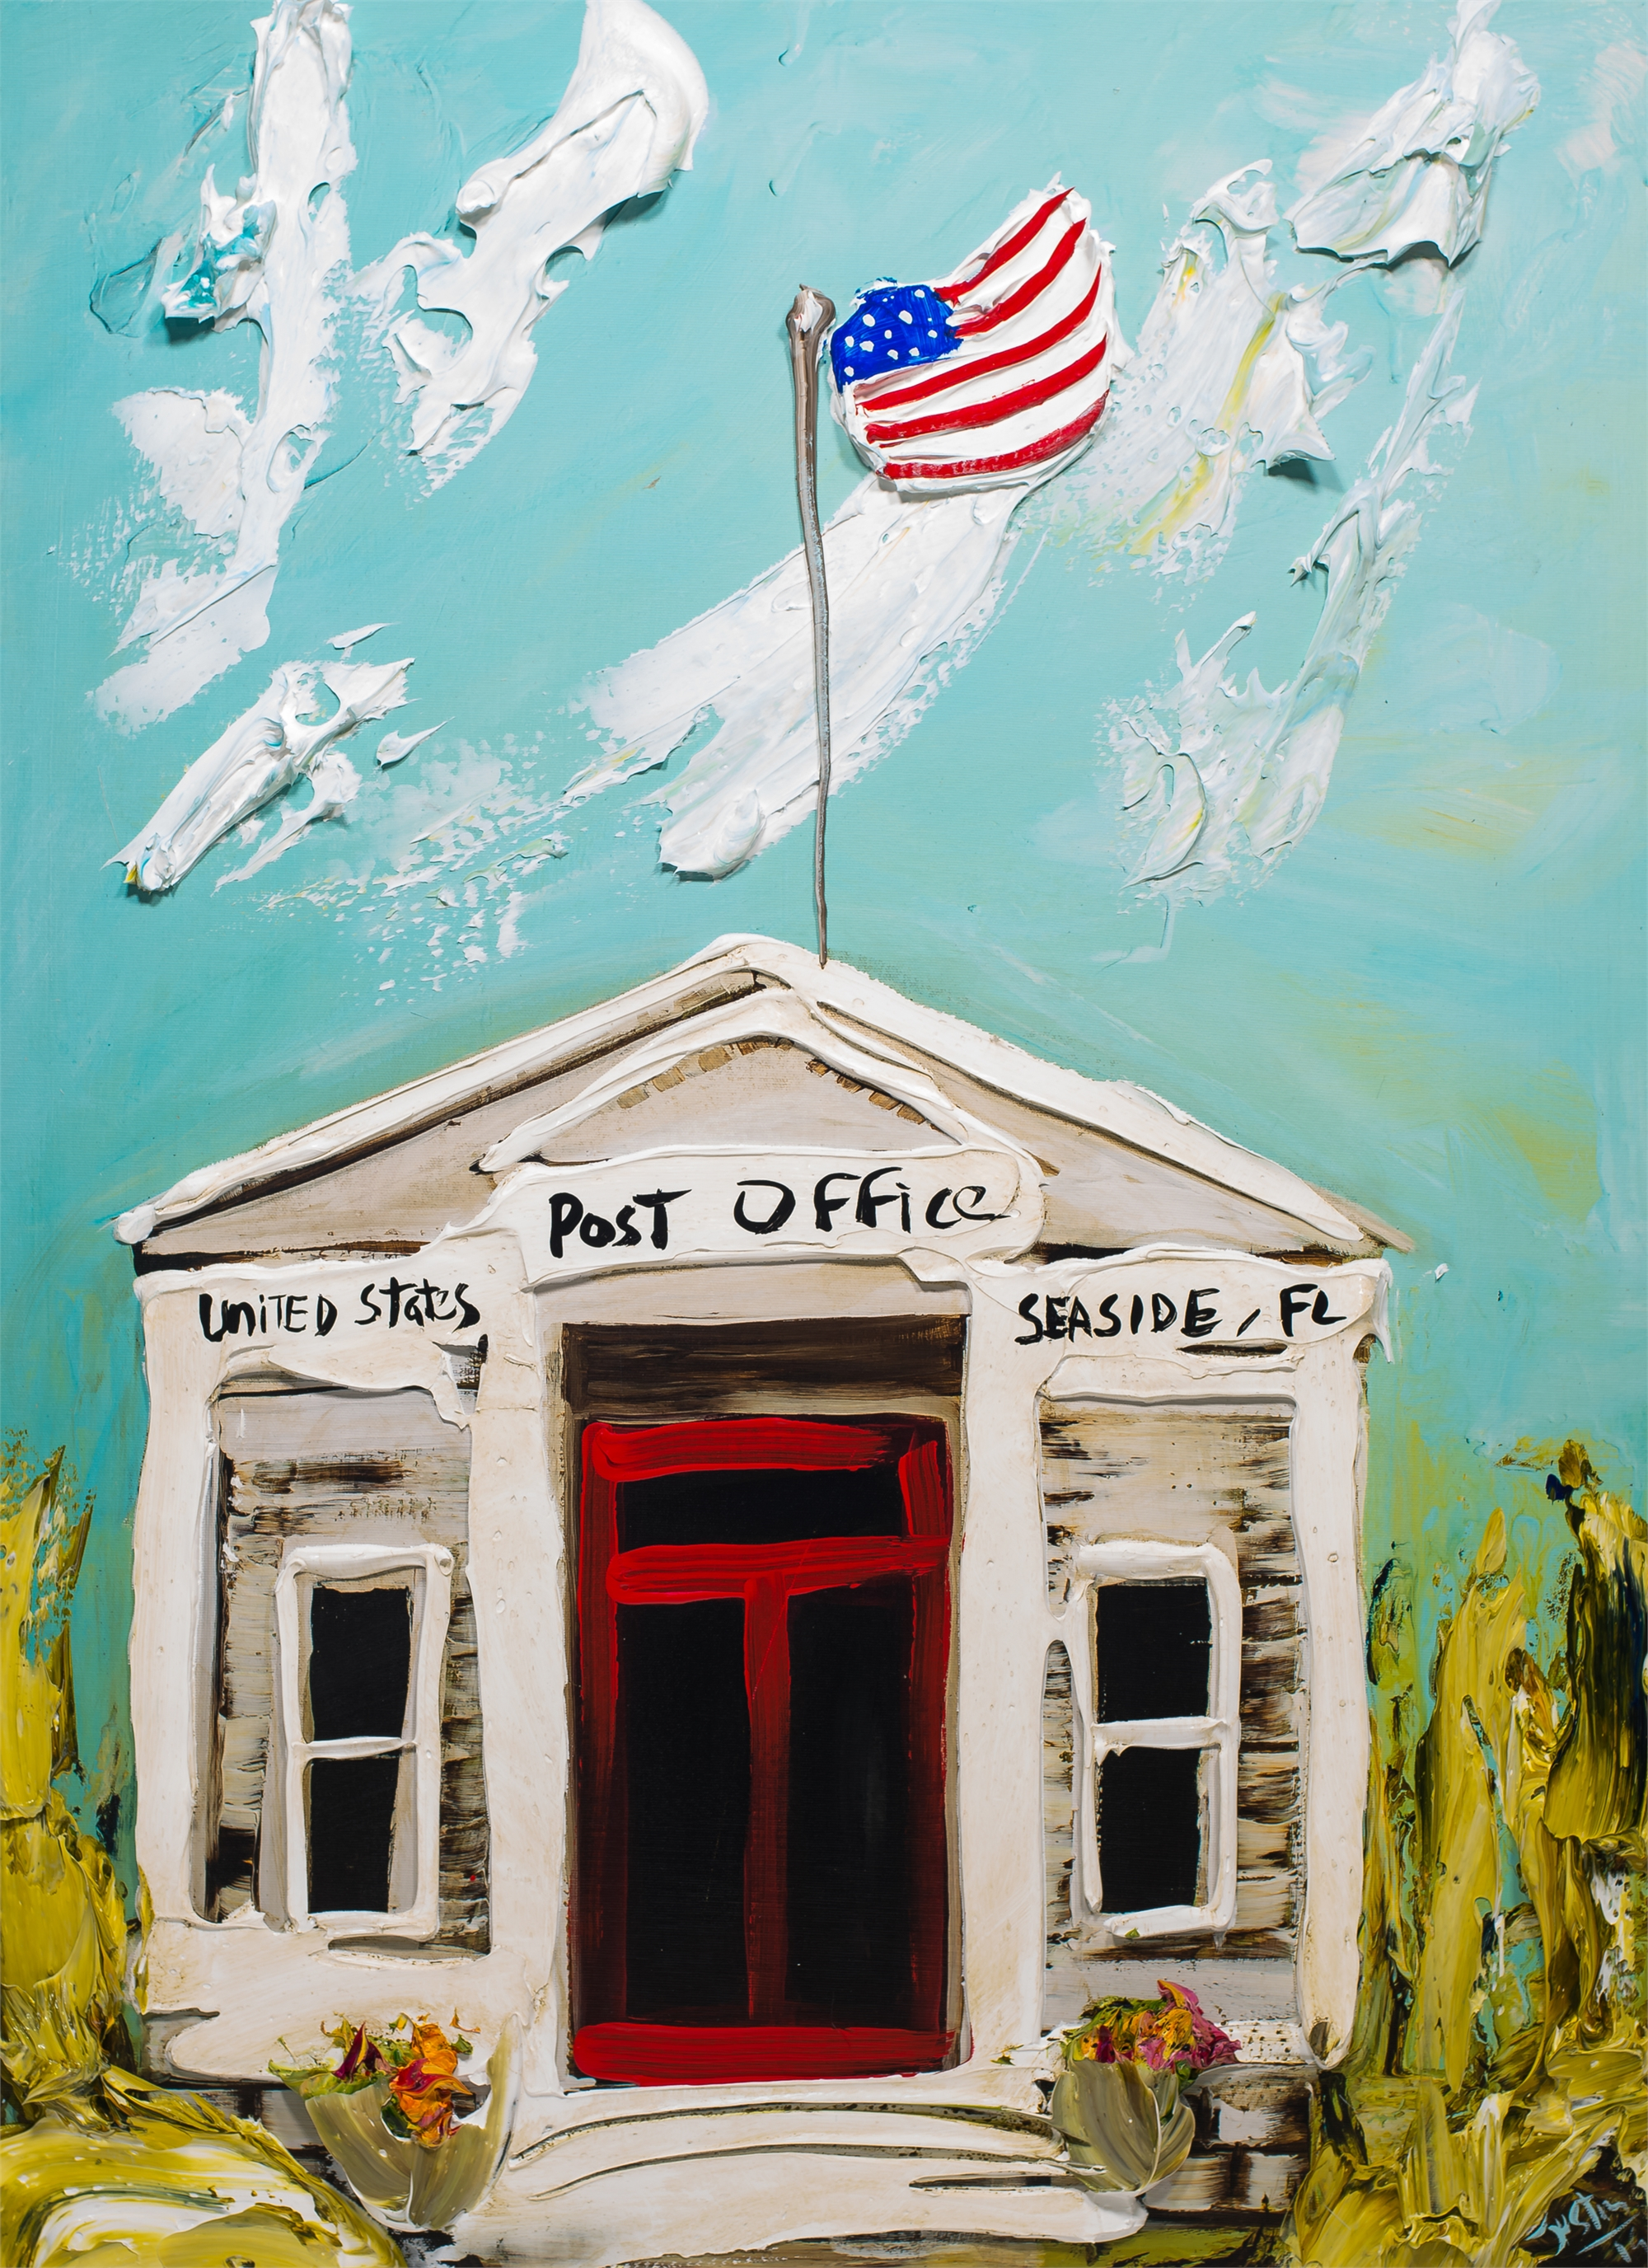 SEASIDE POST OFFICE HPAE 10/50 by JUSTIN GAFFREY